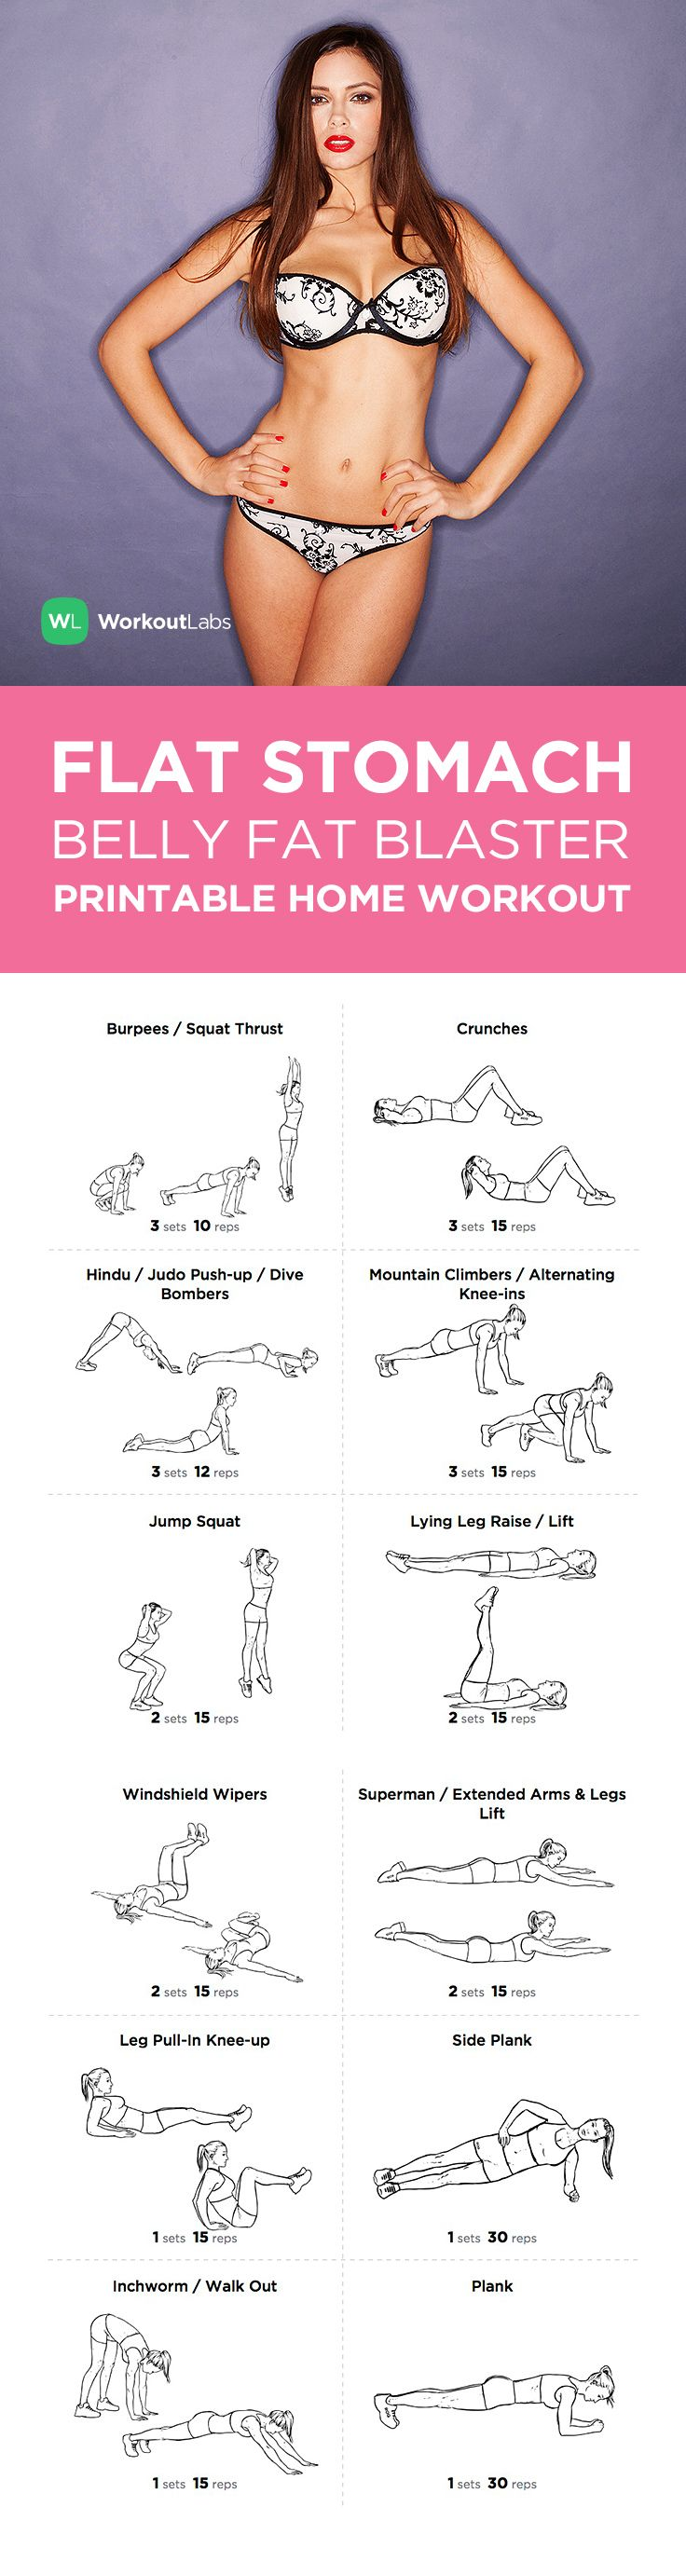 Visit http://WorkoutLabs.com/workout-plans/flat-stomach-belly-fat-blaster-home-workout-for-men-women/ for a FREE PDF of this Flat Stomach Belly Fat Blaster at Home Workout for Men & Women